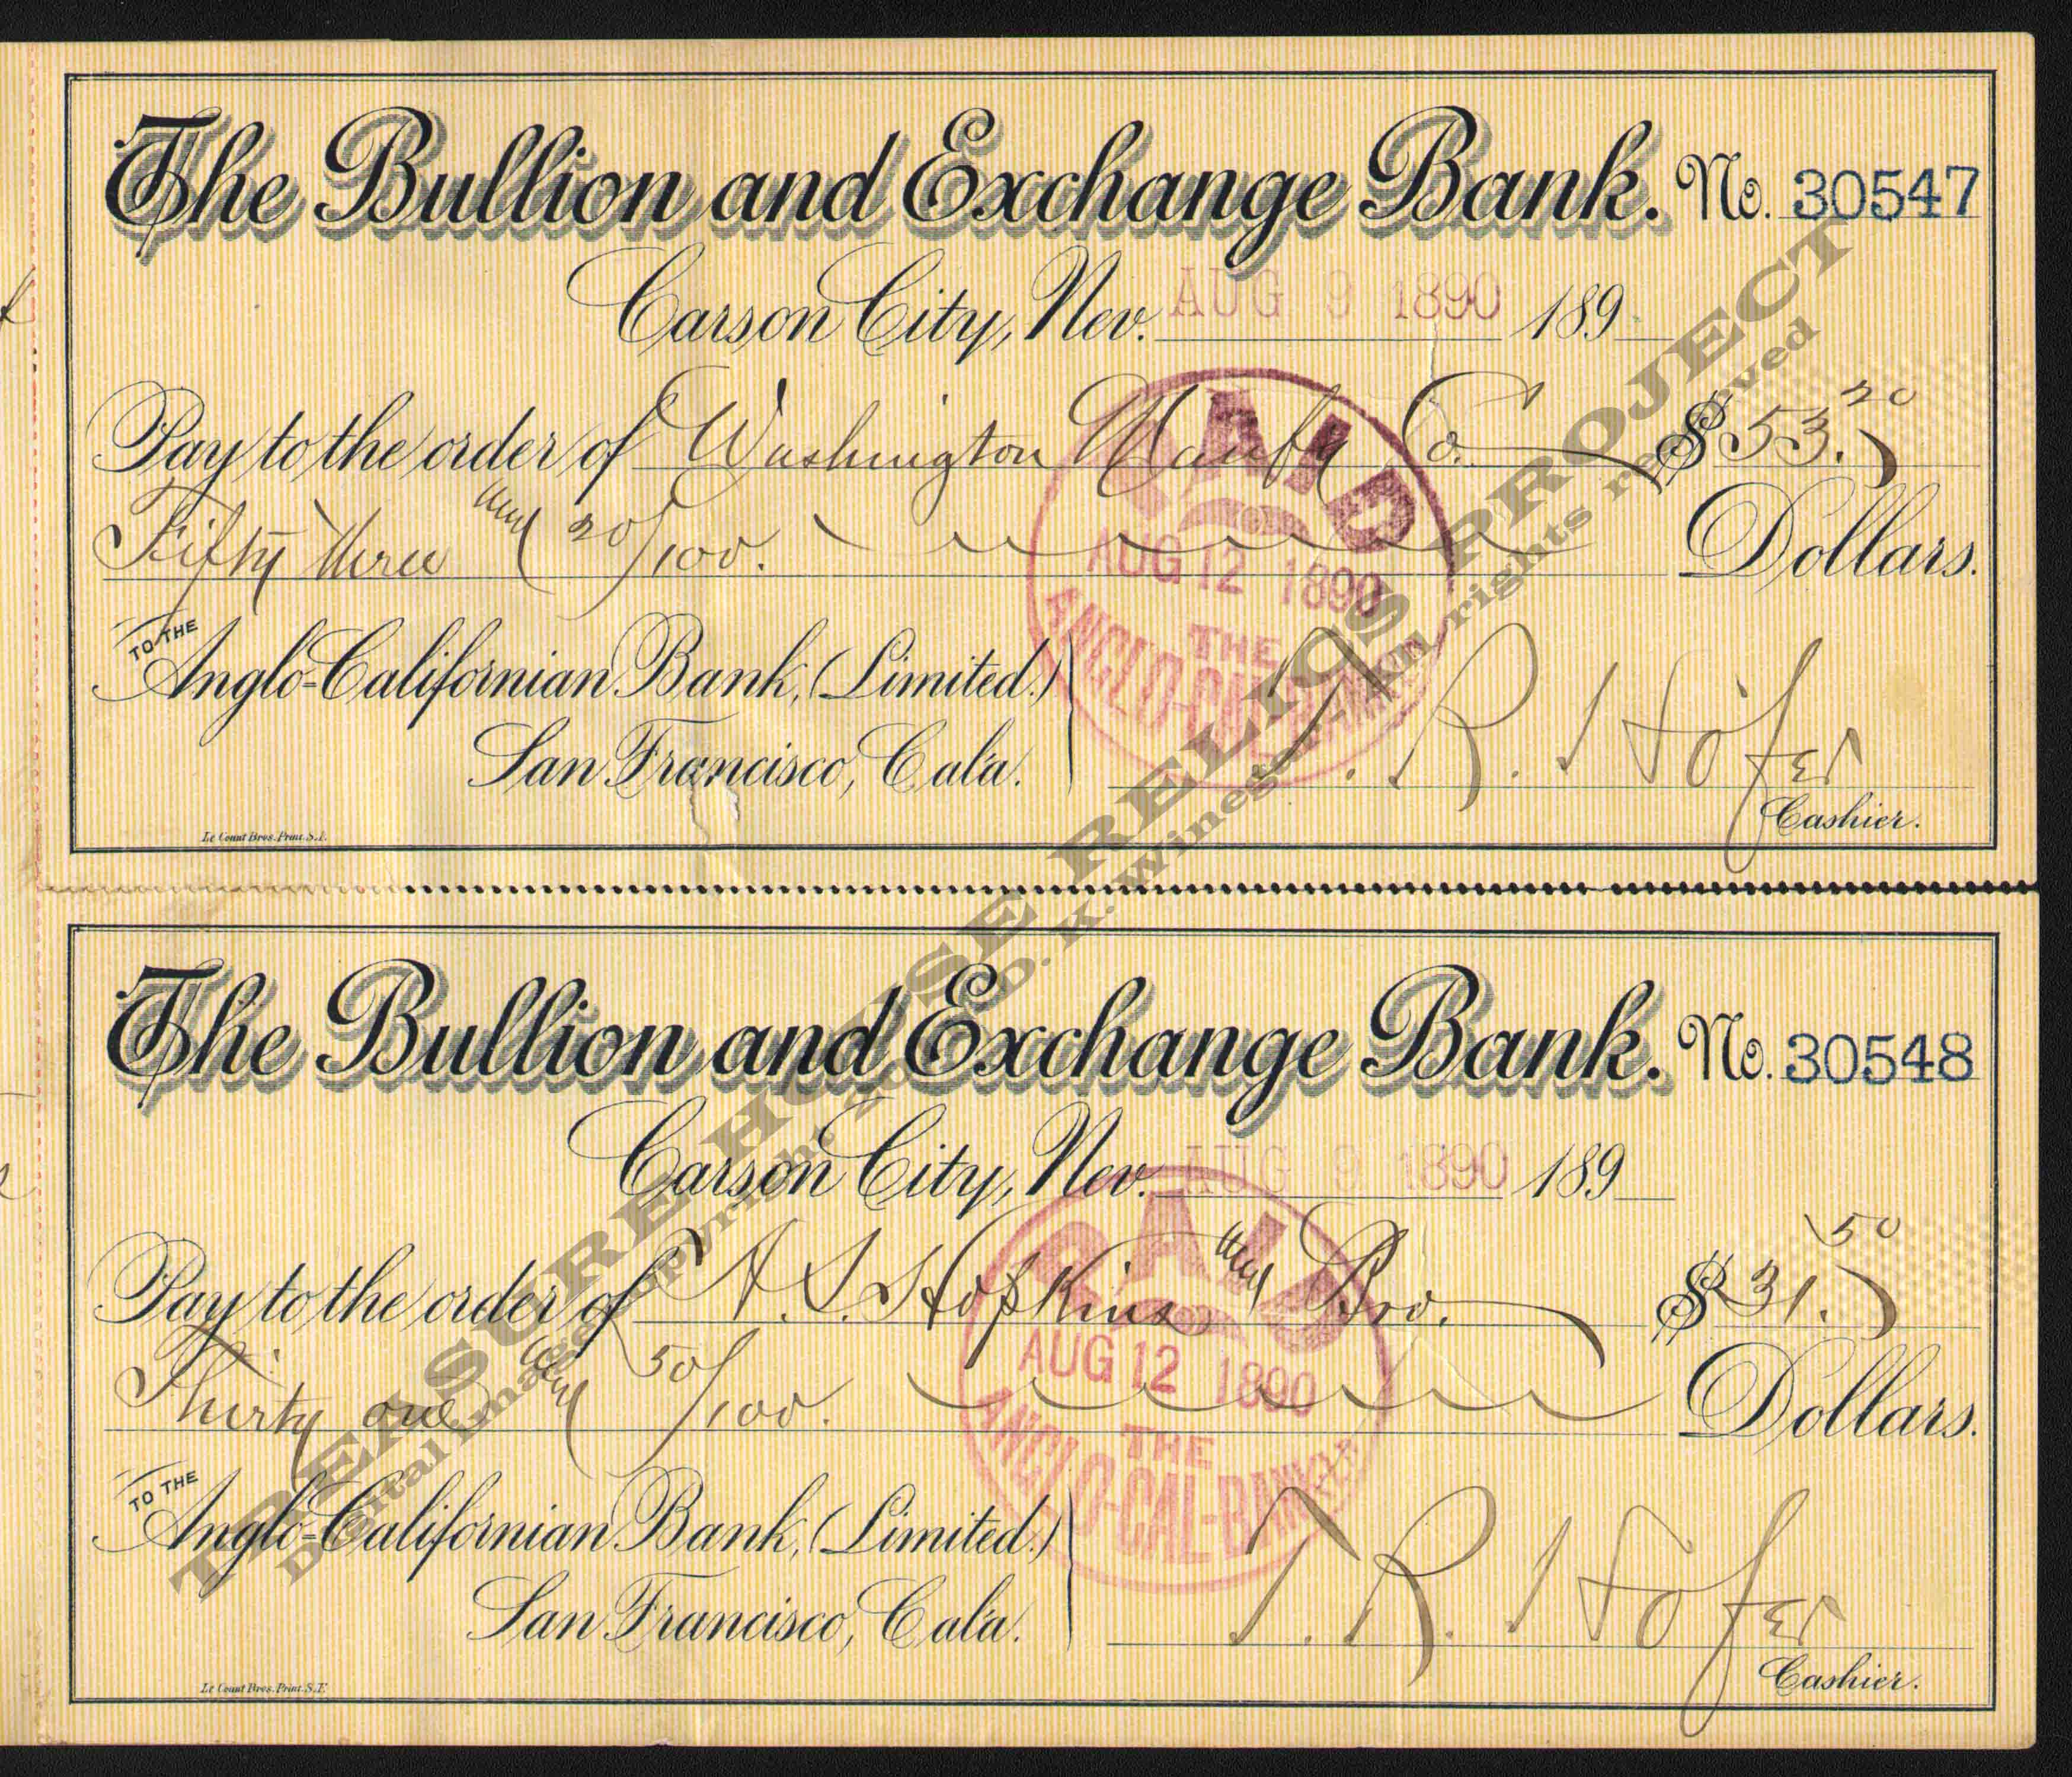 CHECK_BULLION_EXCHANGE_BANK_30547_1890_400_CROP_EMBOSS.jpg